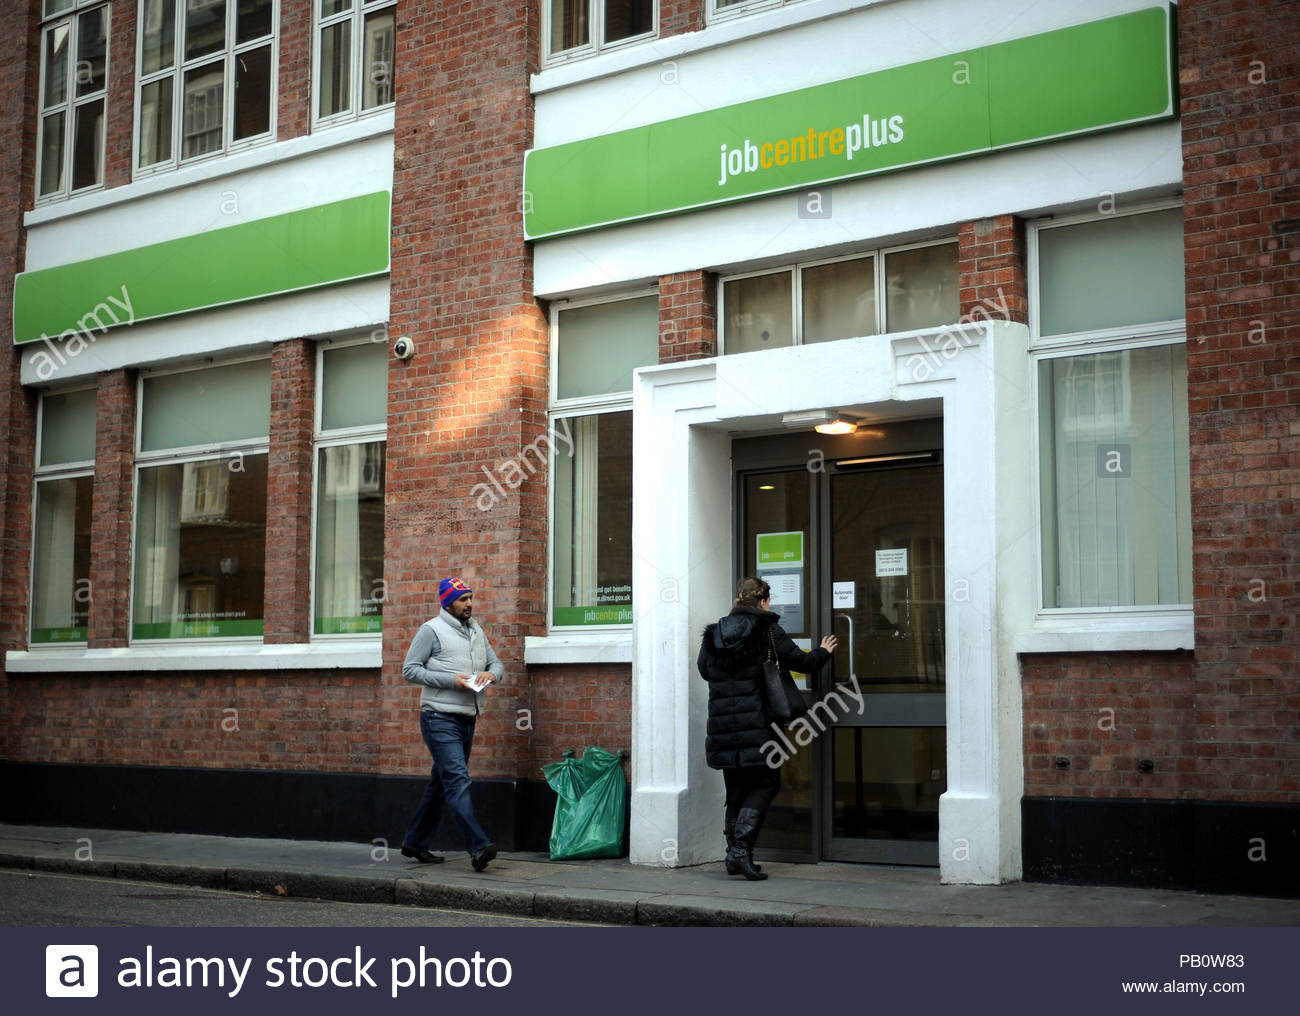 Embargoed to 0001 Thursday July 26 File photo 20/02/13 of a job centre plus. 700 adults surveyed by jobs site Glassdoor said that commuting time has become one of the top considerations for jobseekers. Stock Photo